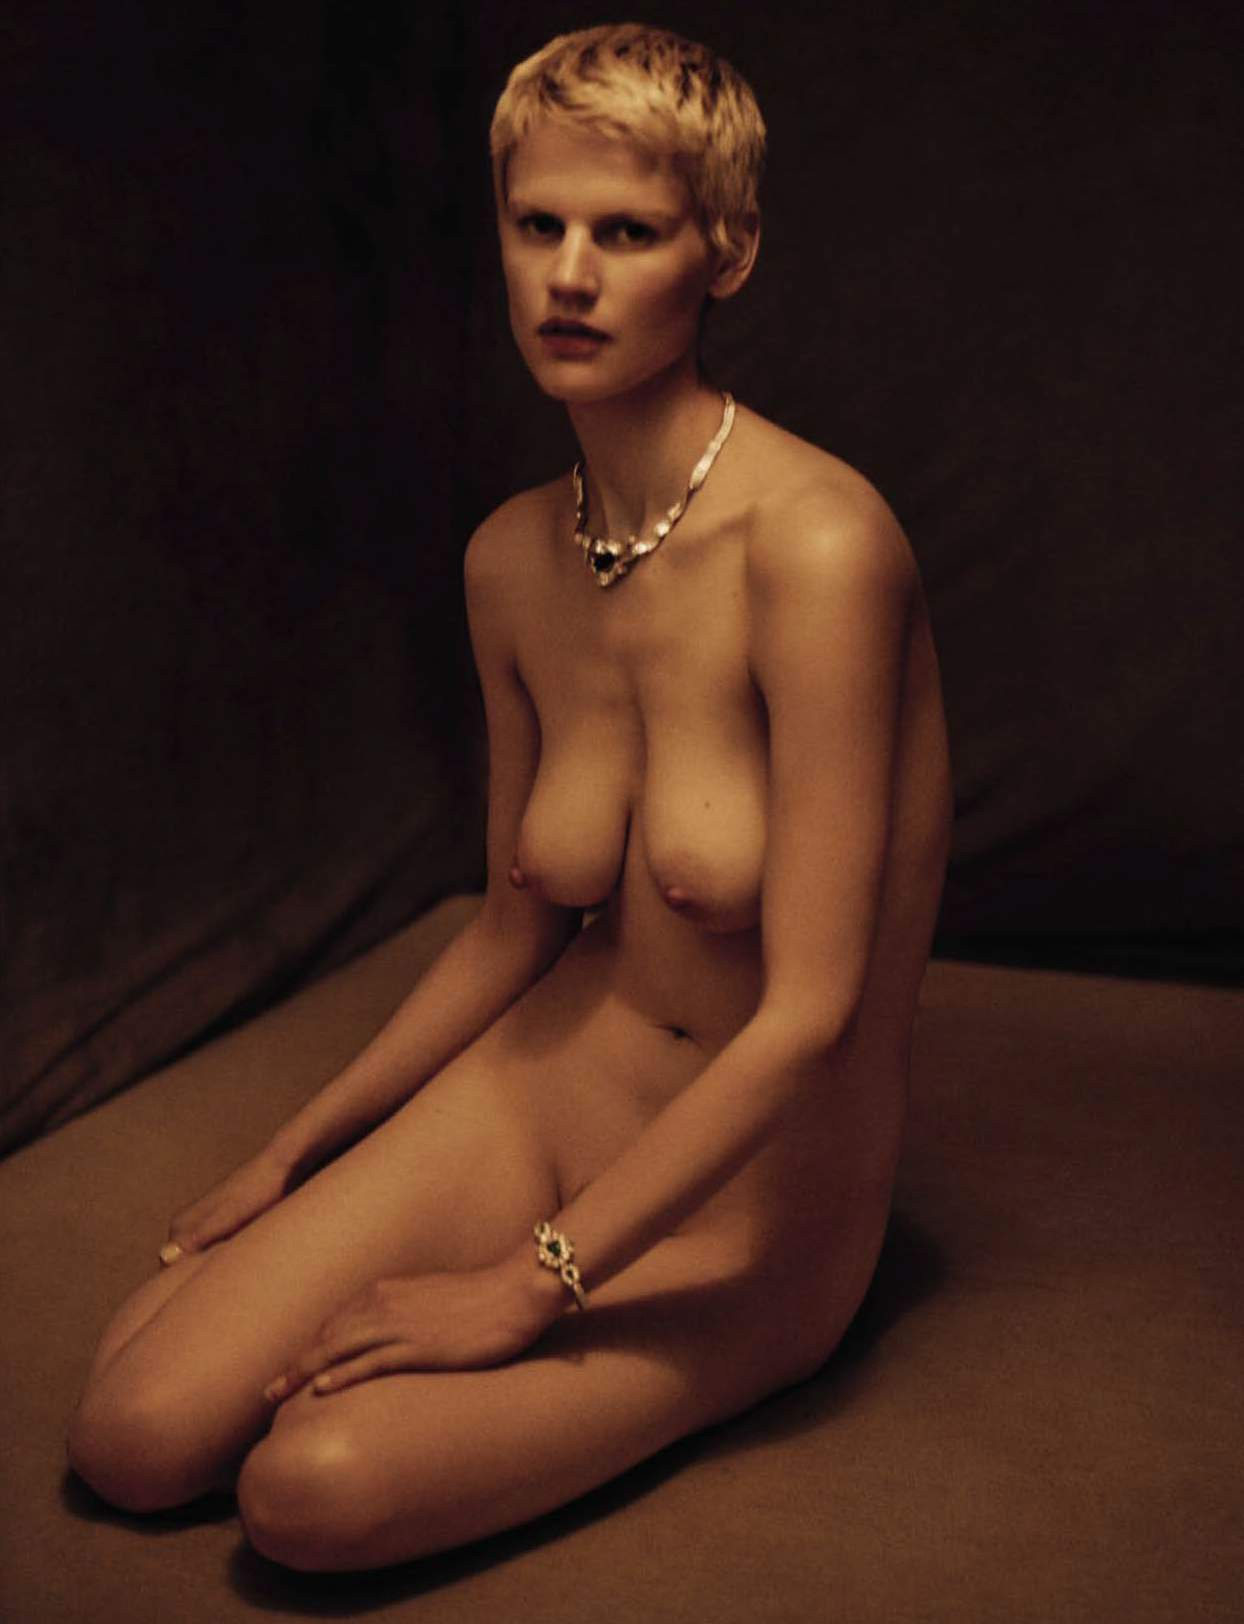 saskia-de-brauw-by-paolo-roversi-for-vogue-italia-september-2015-6